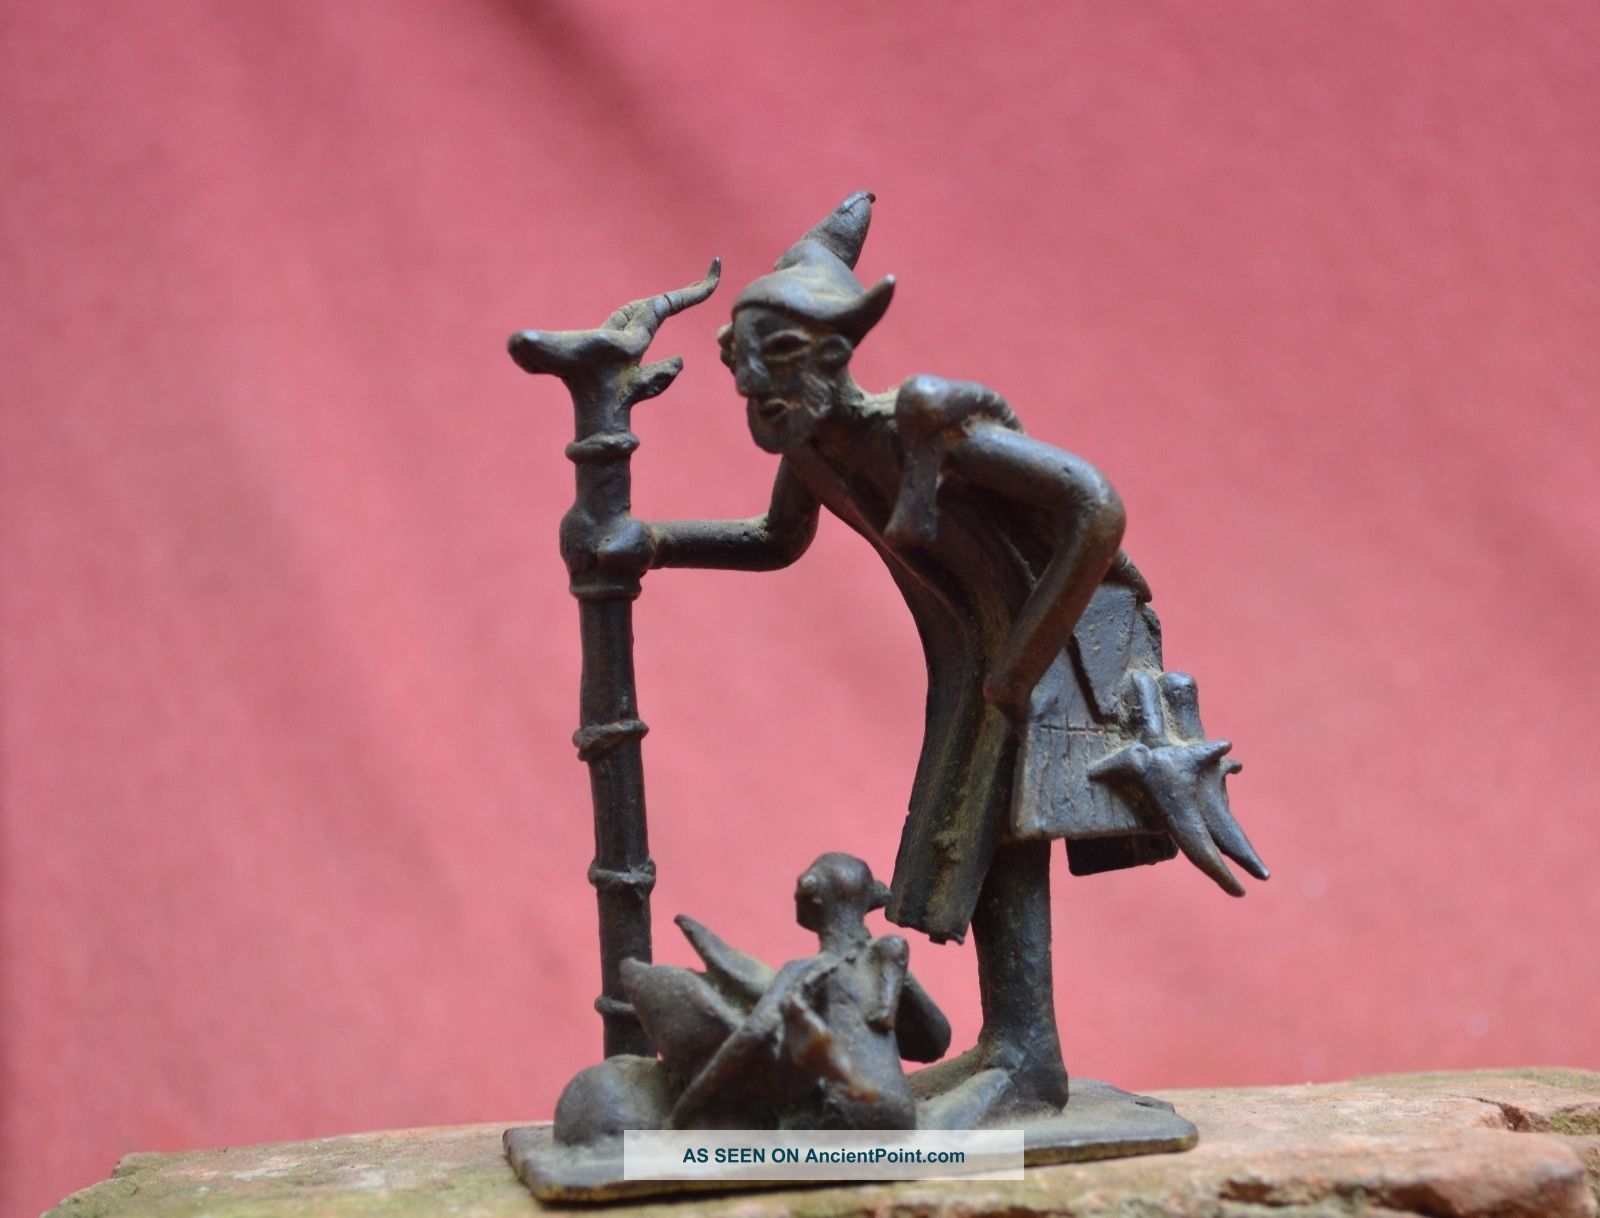 Interesting Bronze Statue Of A Shaman,  Figure With Bird Ashanti People In Ghana. Sculptures & Statues photo